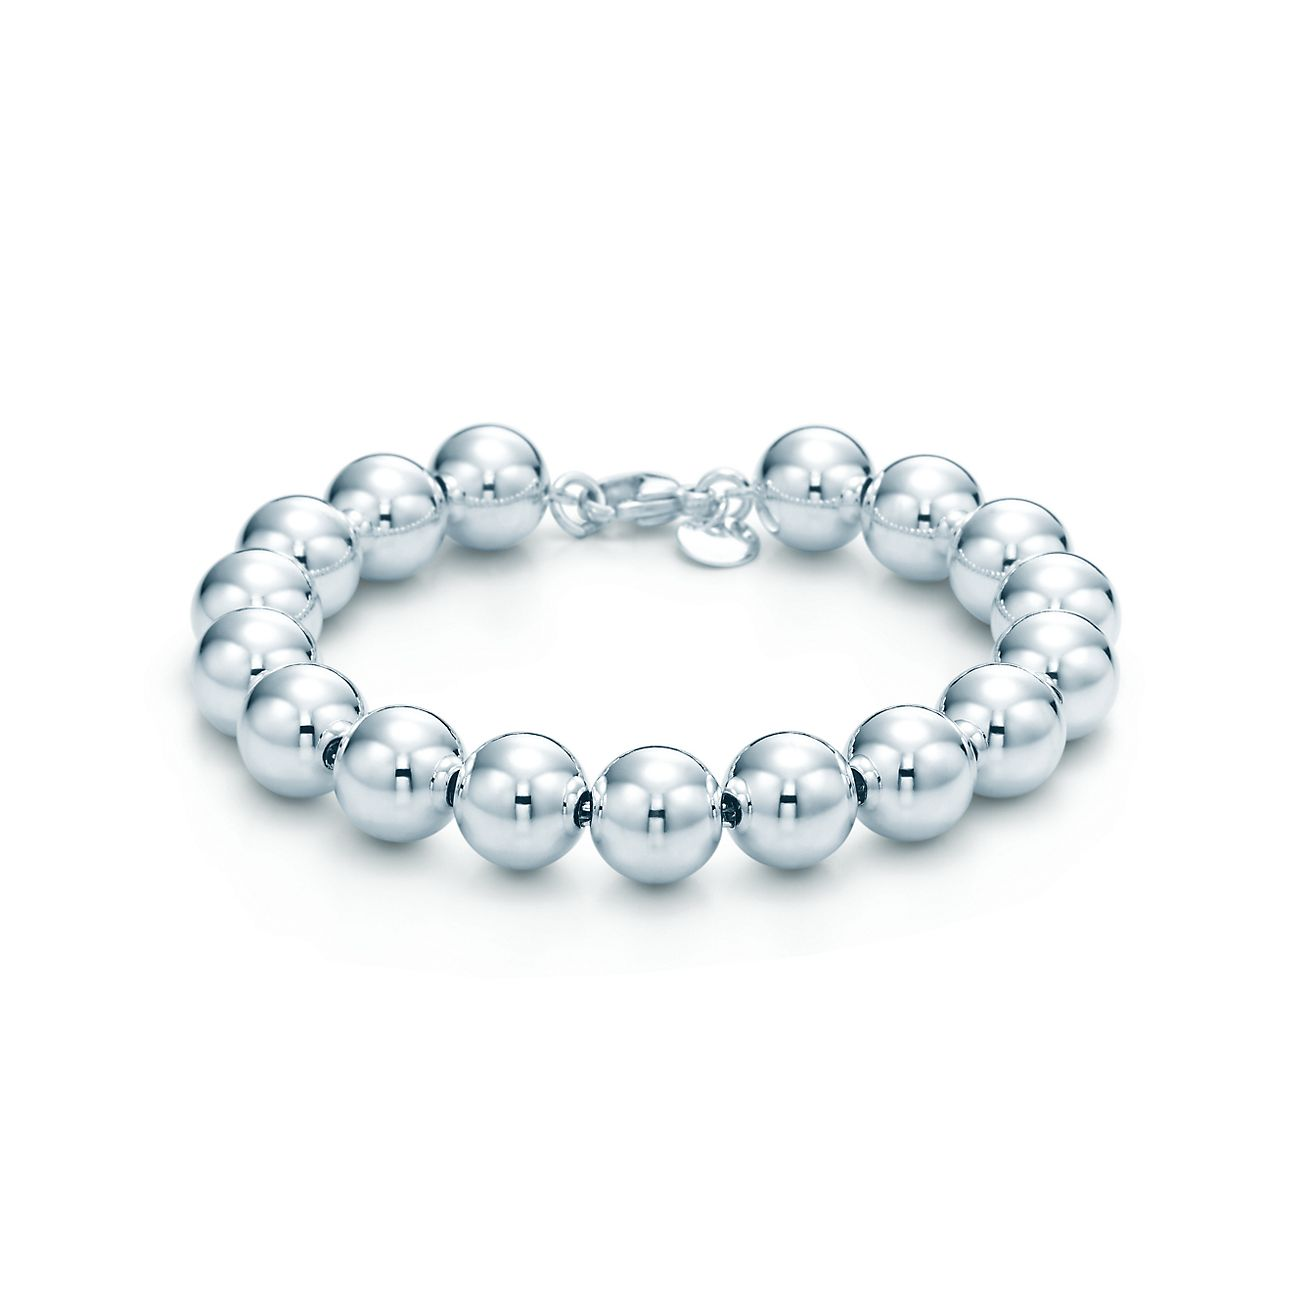 Tiffany City Hardwear Ball Bracelet